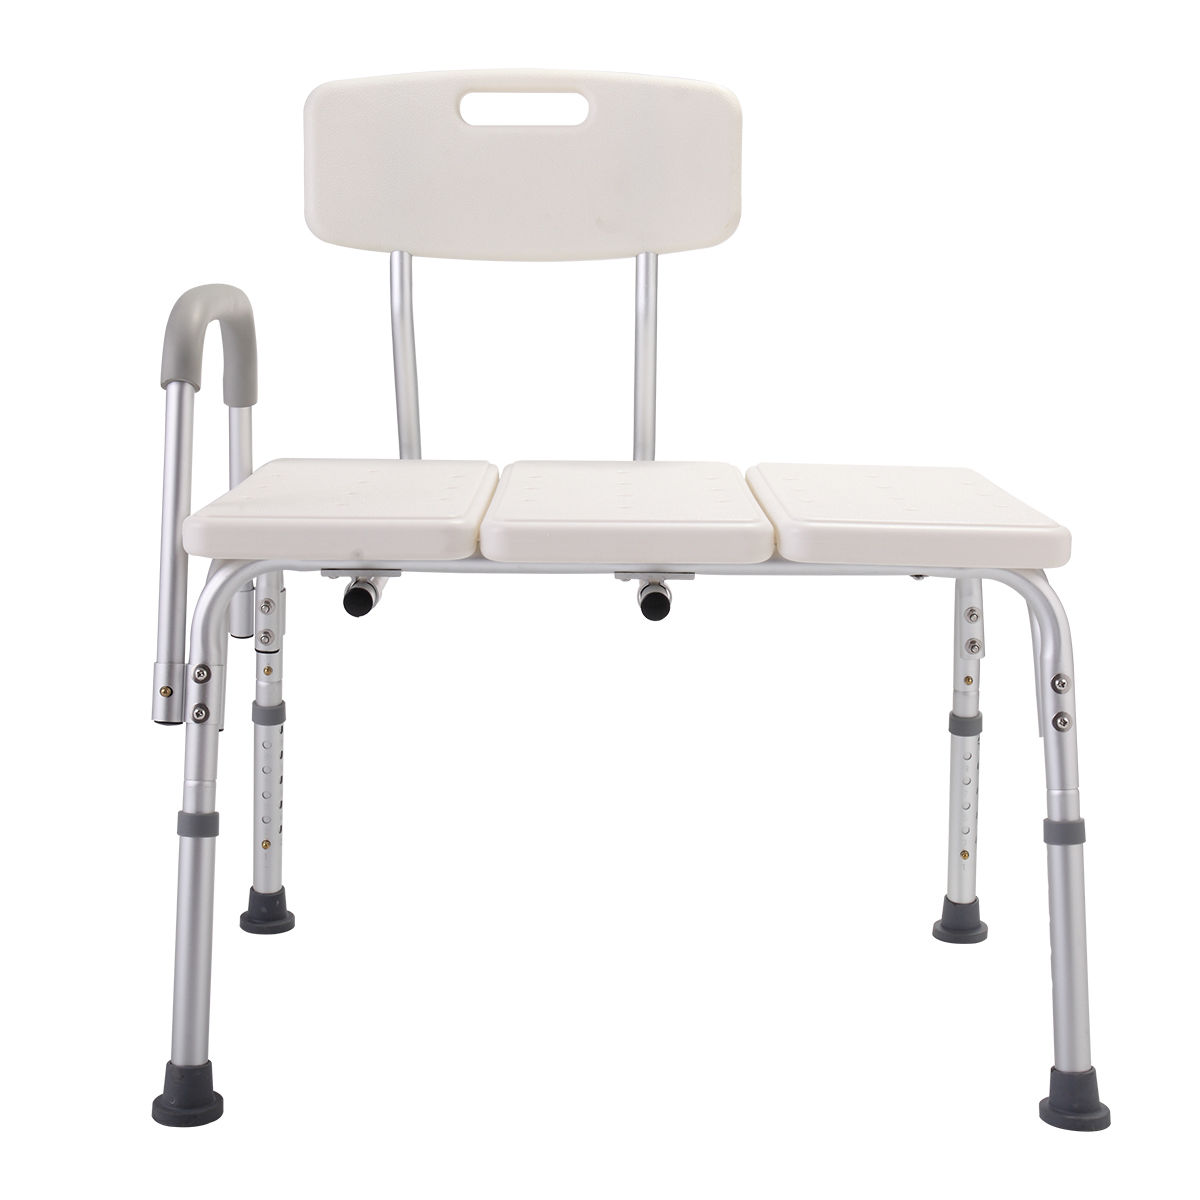 difference between shower chair and tub transfer bench alps camp medical height adjustable bath with arms